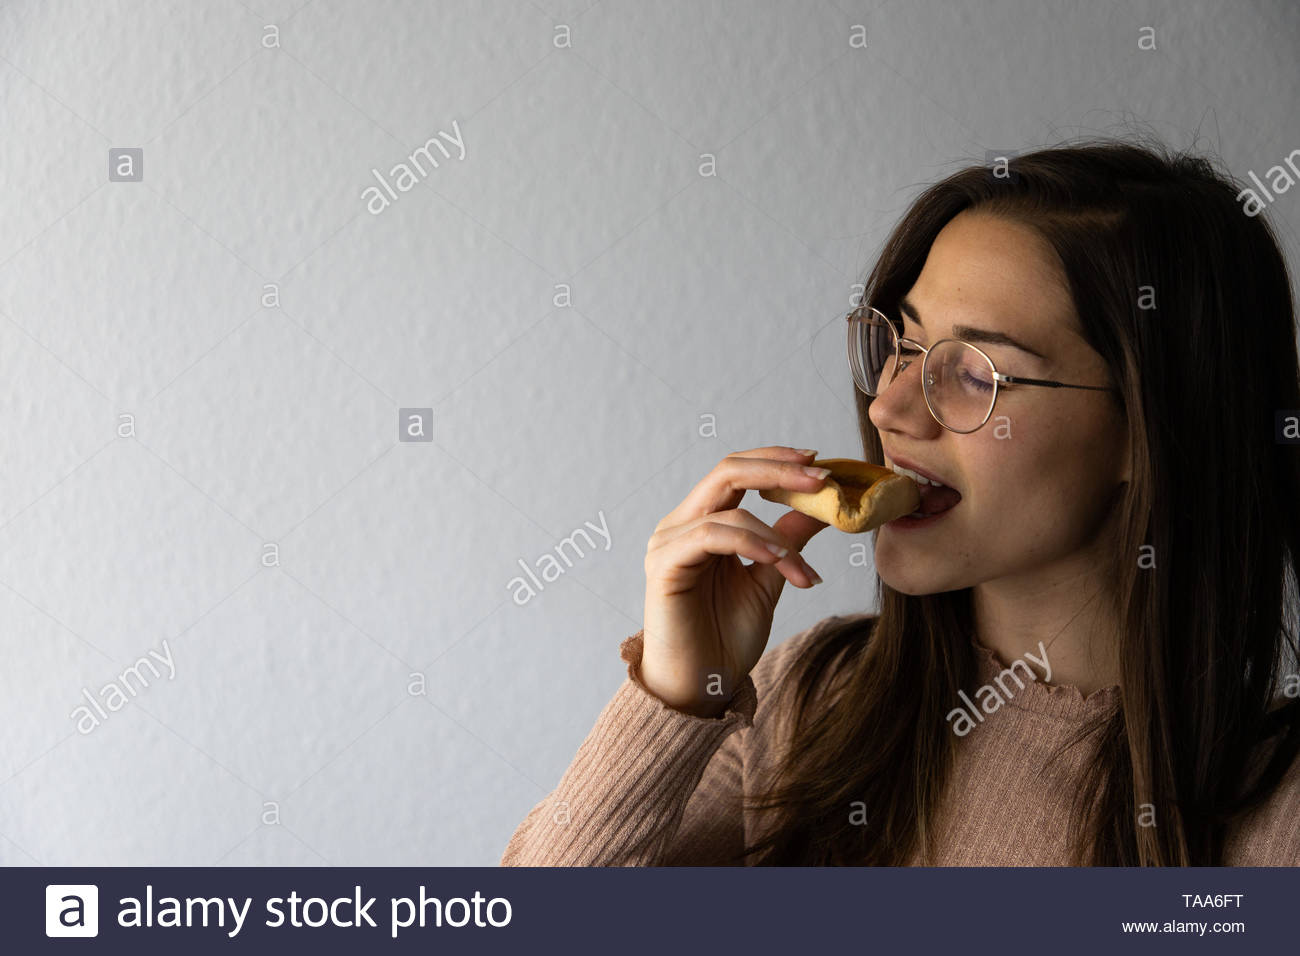 Beautiful and happy women portrait eating hamantash Purim apricot cookie - Stock Image